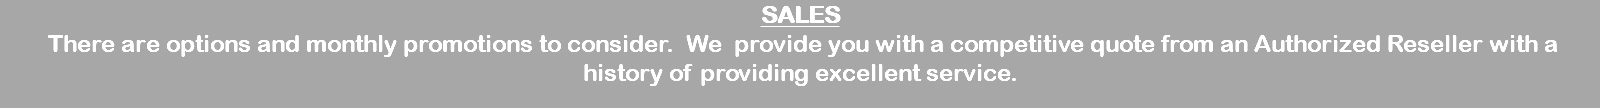 SALES There are options and monthly promotions to consider. We provide you with a competitive quote from an Authorized Reseller with a history of providing excellent service.